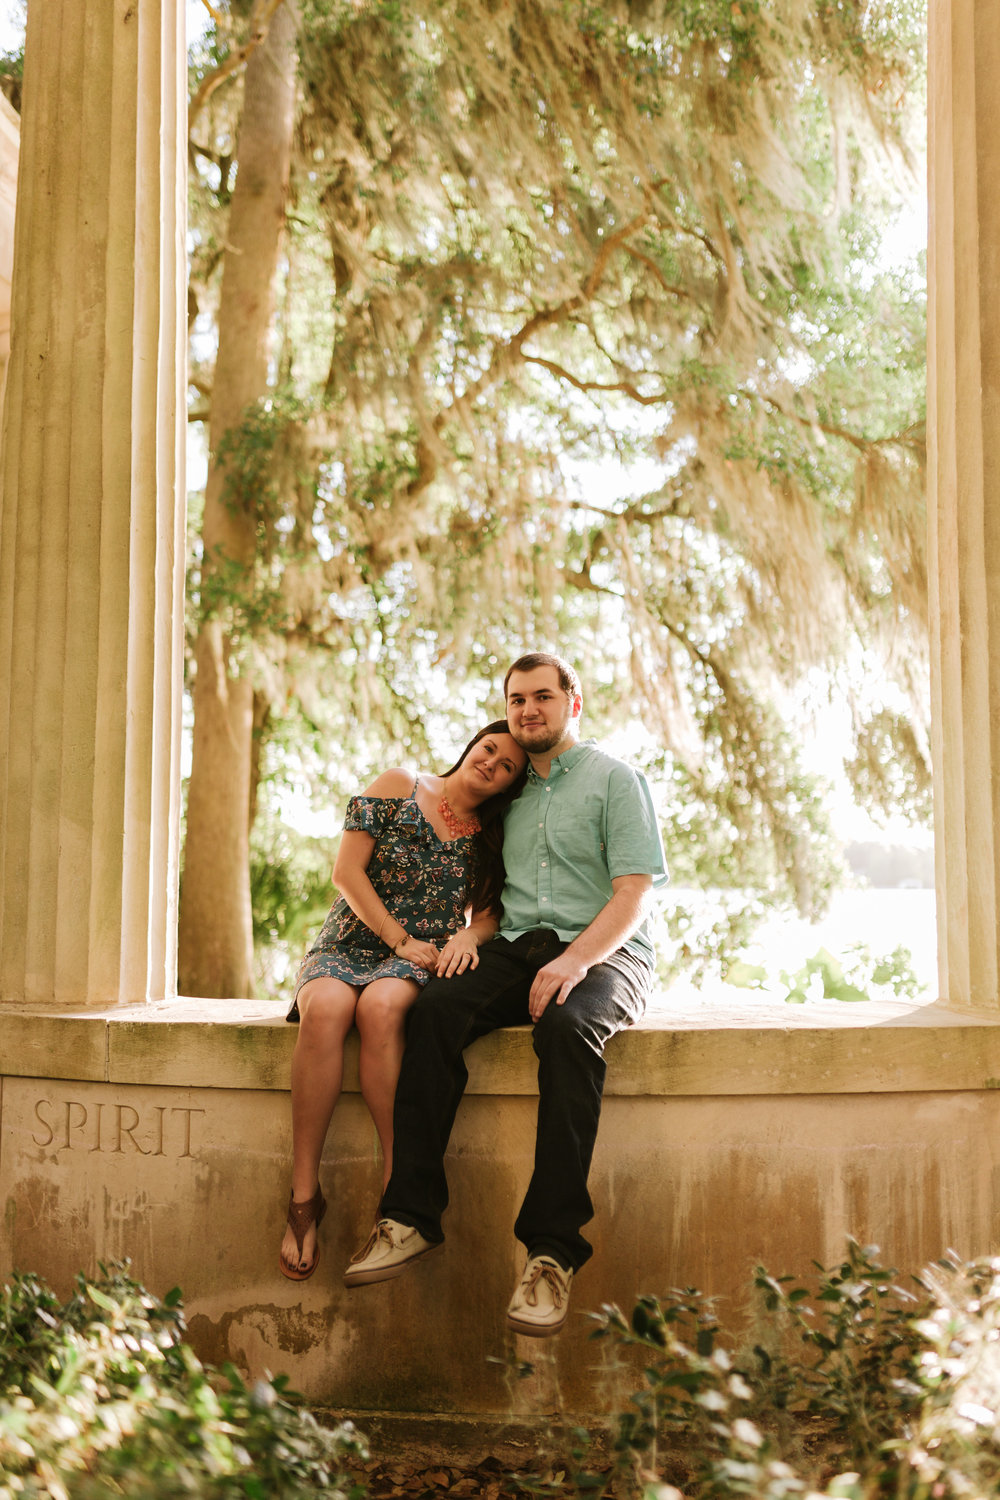 2017.04.29 Kaleb and Cole Kraft Azalea Gardens Engagement (140 of 140).jpg